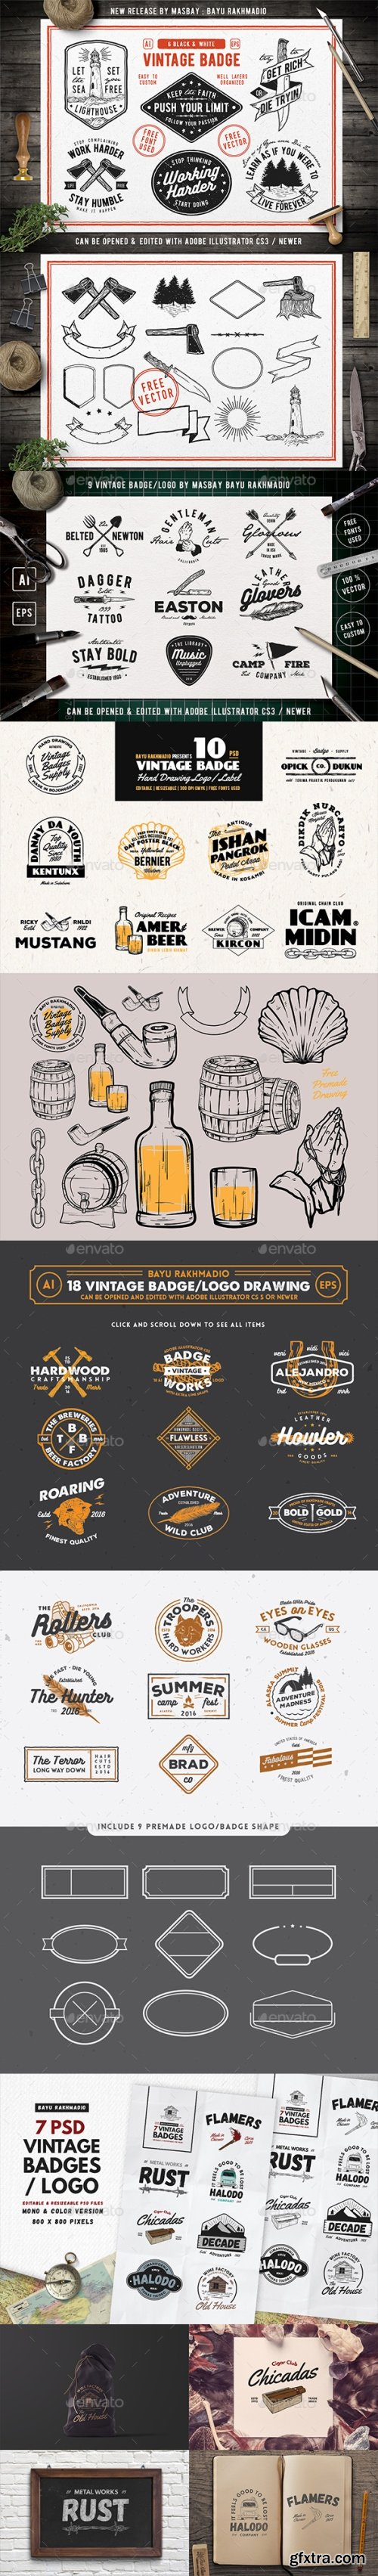 Graphicriver - 50 Vintage Badges Bundle 20547578